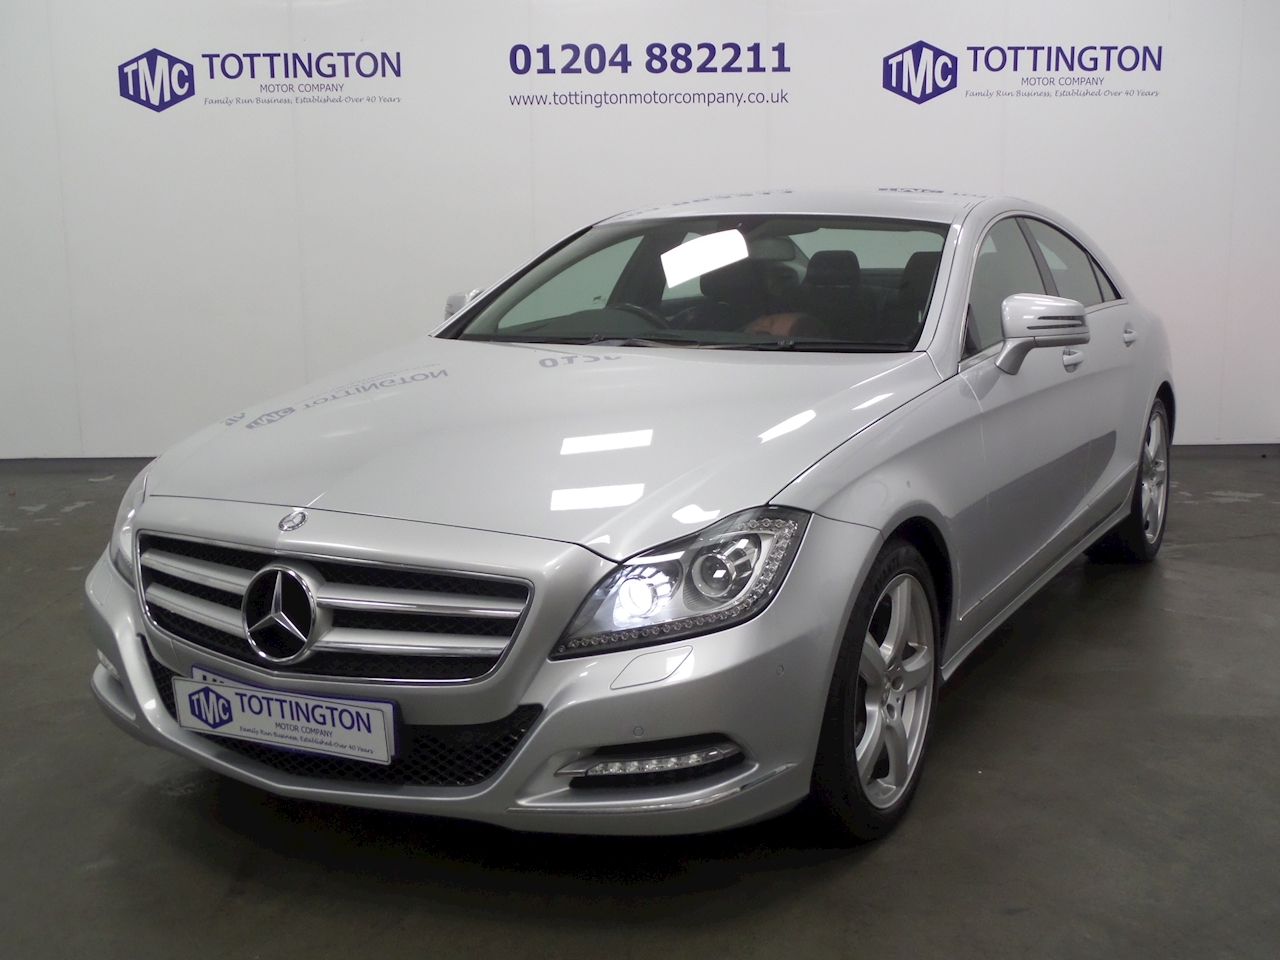 Mercedes-Benz Cls Cls350 Cdi Blueefficiency Diesel Automatic 3.0 4dr Coupe Automatic Diesel